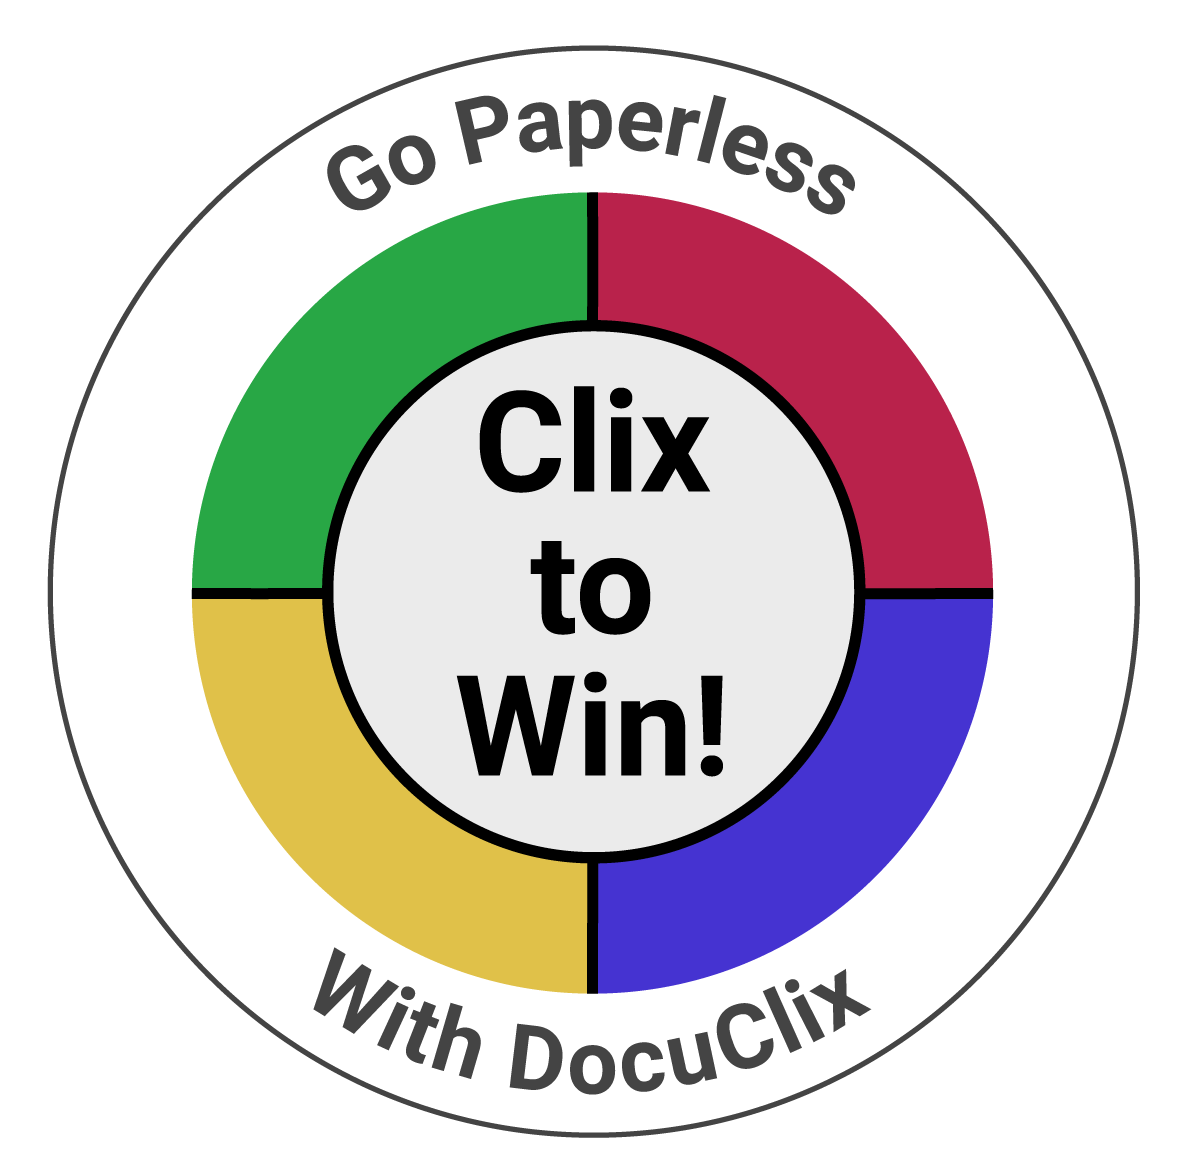 Go Paperless with DocuClix!